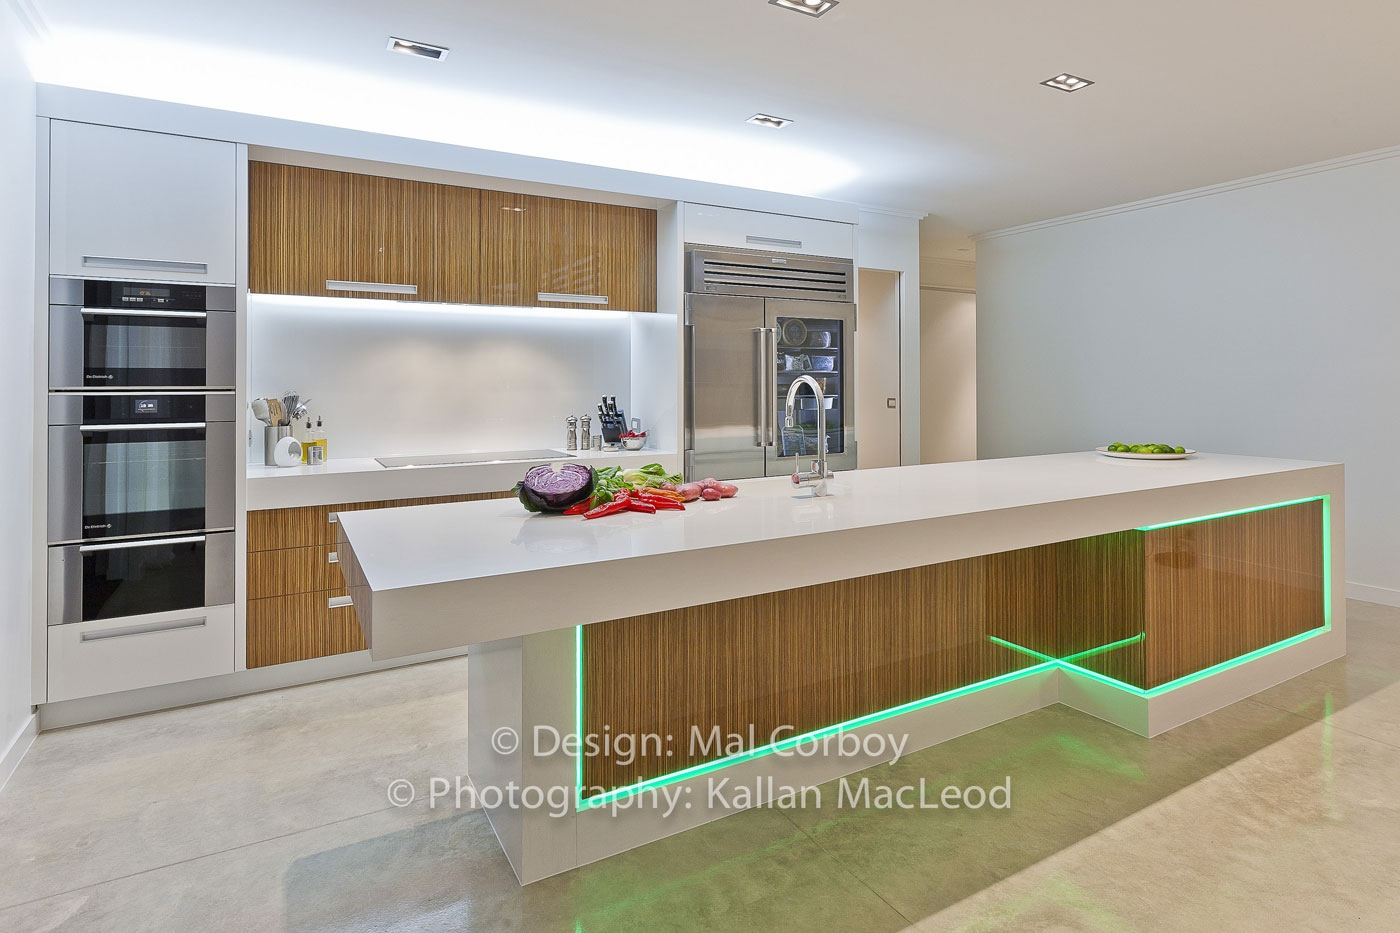 Minimalist modern kitchen interior design ideas for Modern kitchen lighting design